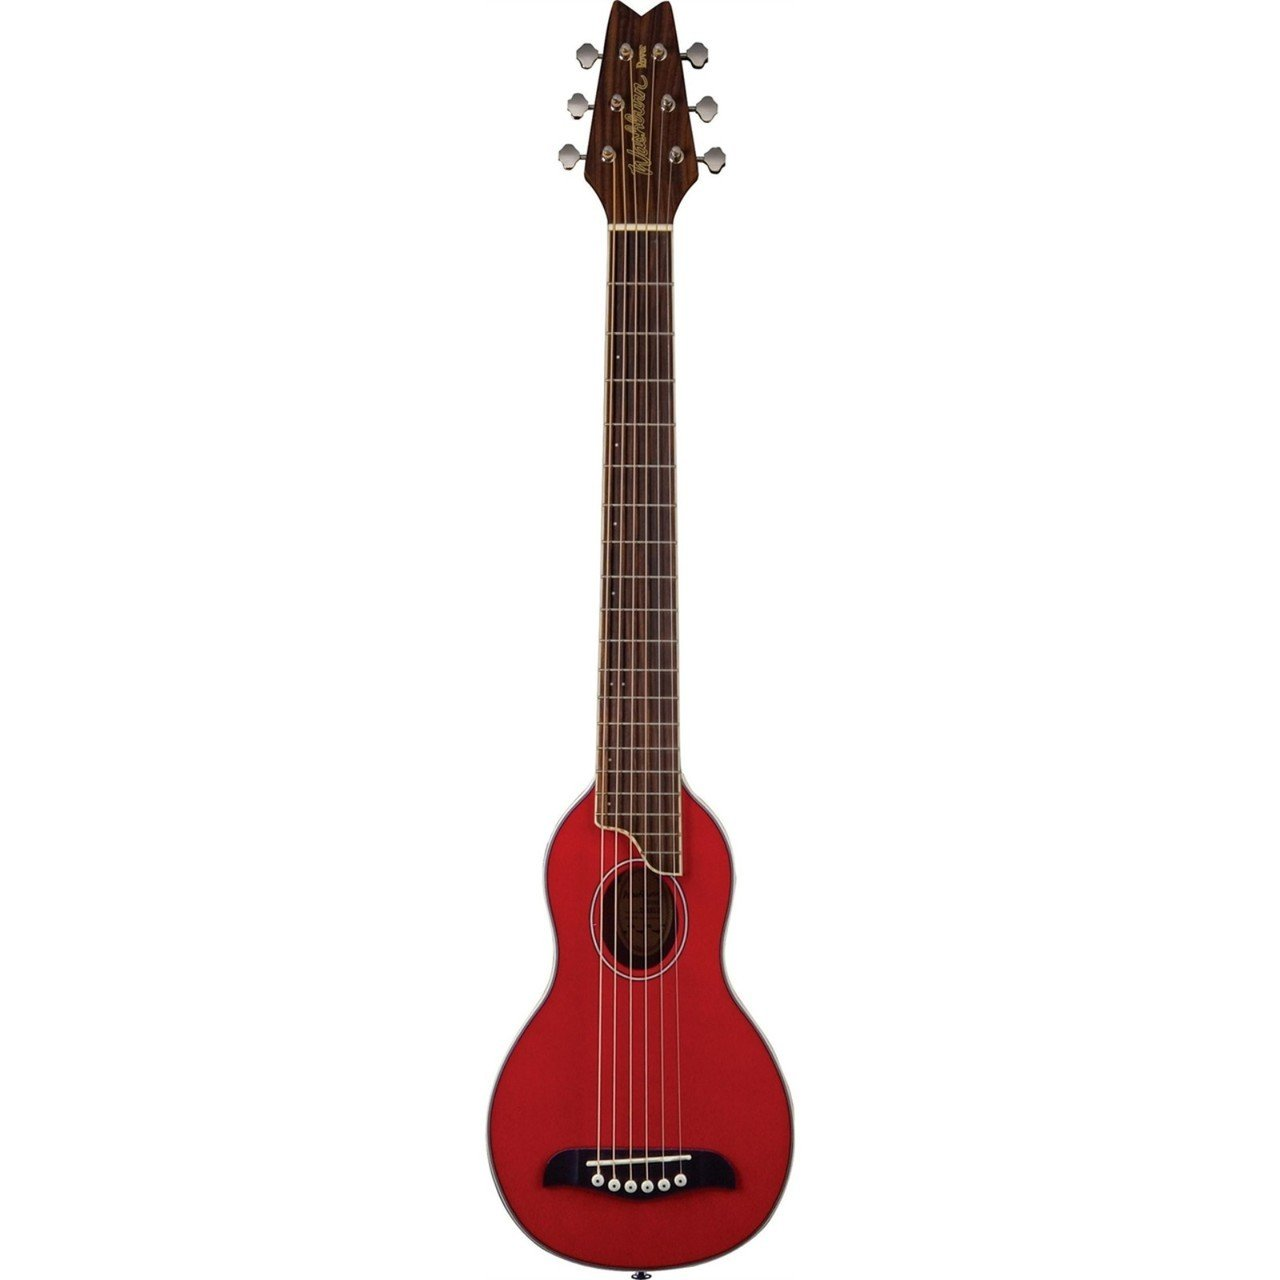 Washburn Rover Acoustic Guitar W/ Gig Bag, Red